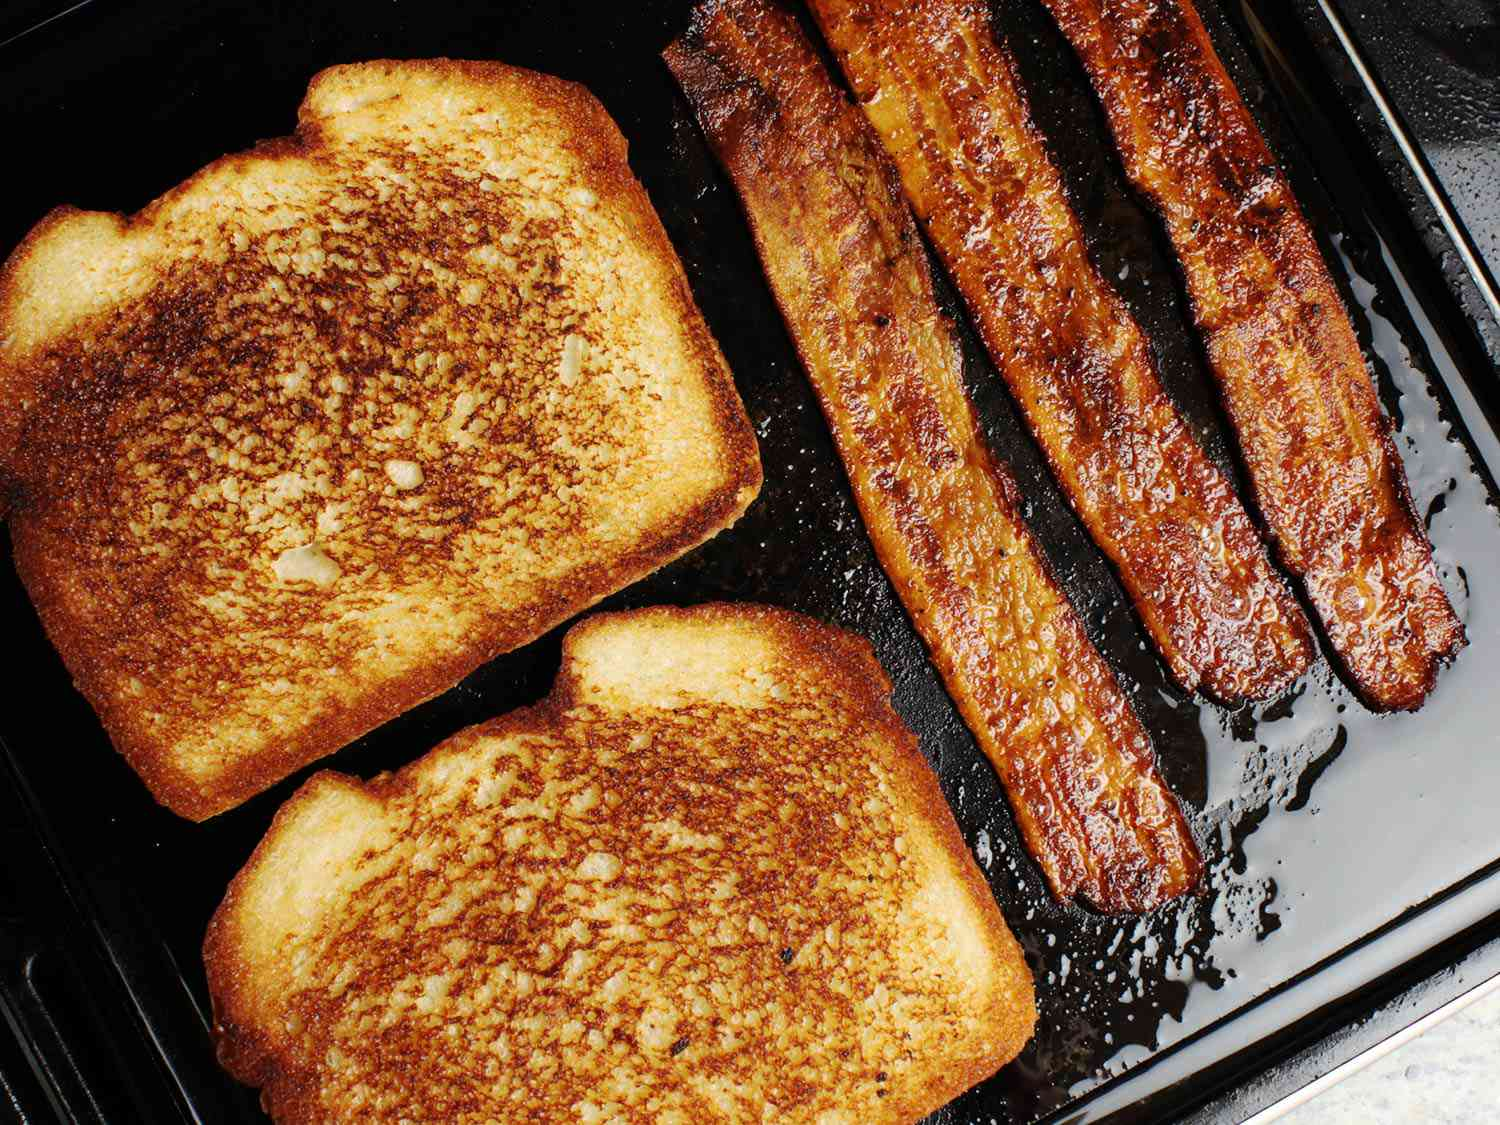 Two slices of sandwich bread toasting next to three strips of bacon on a griddle